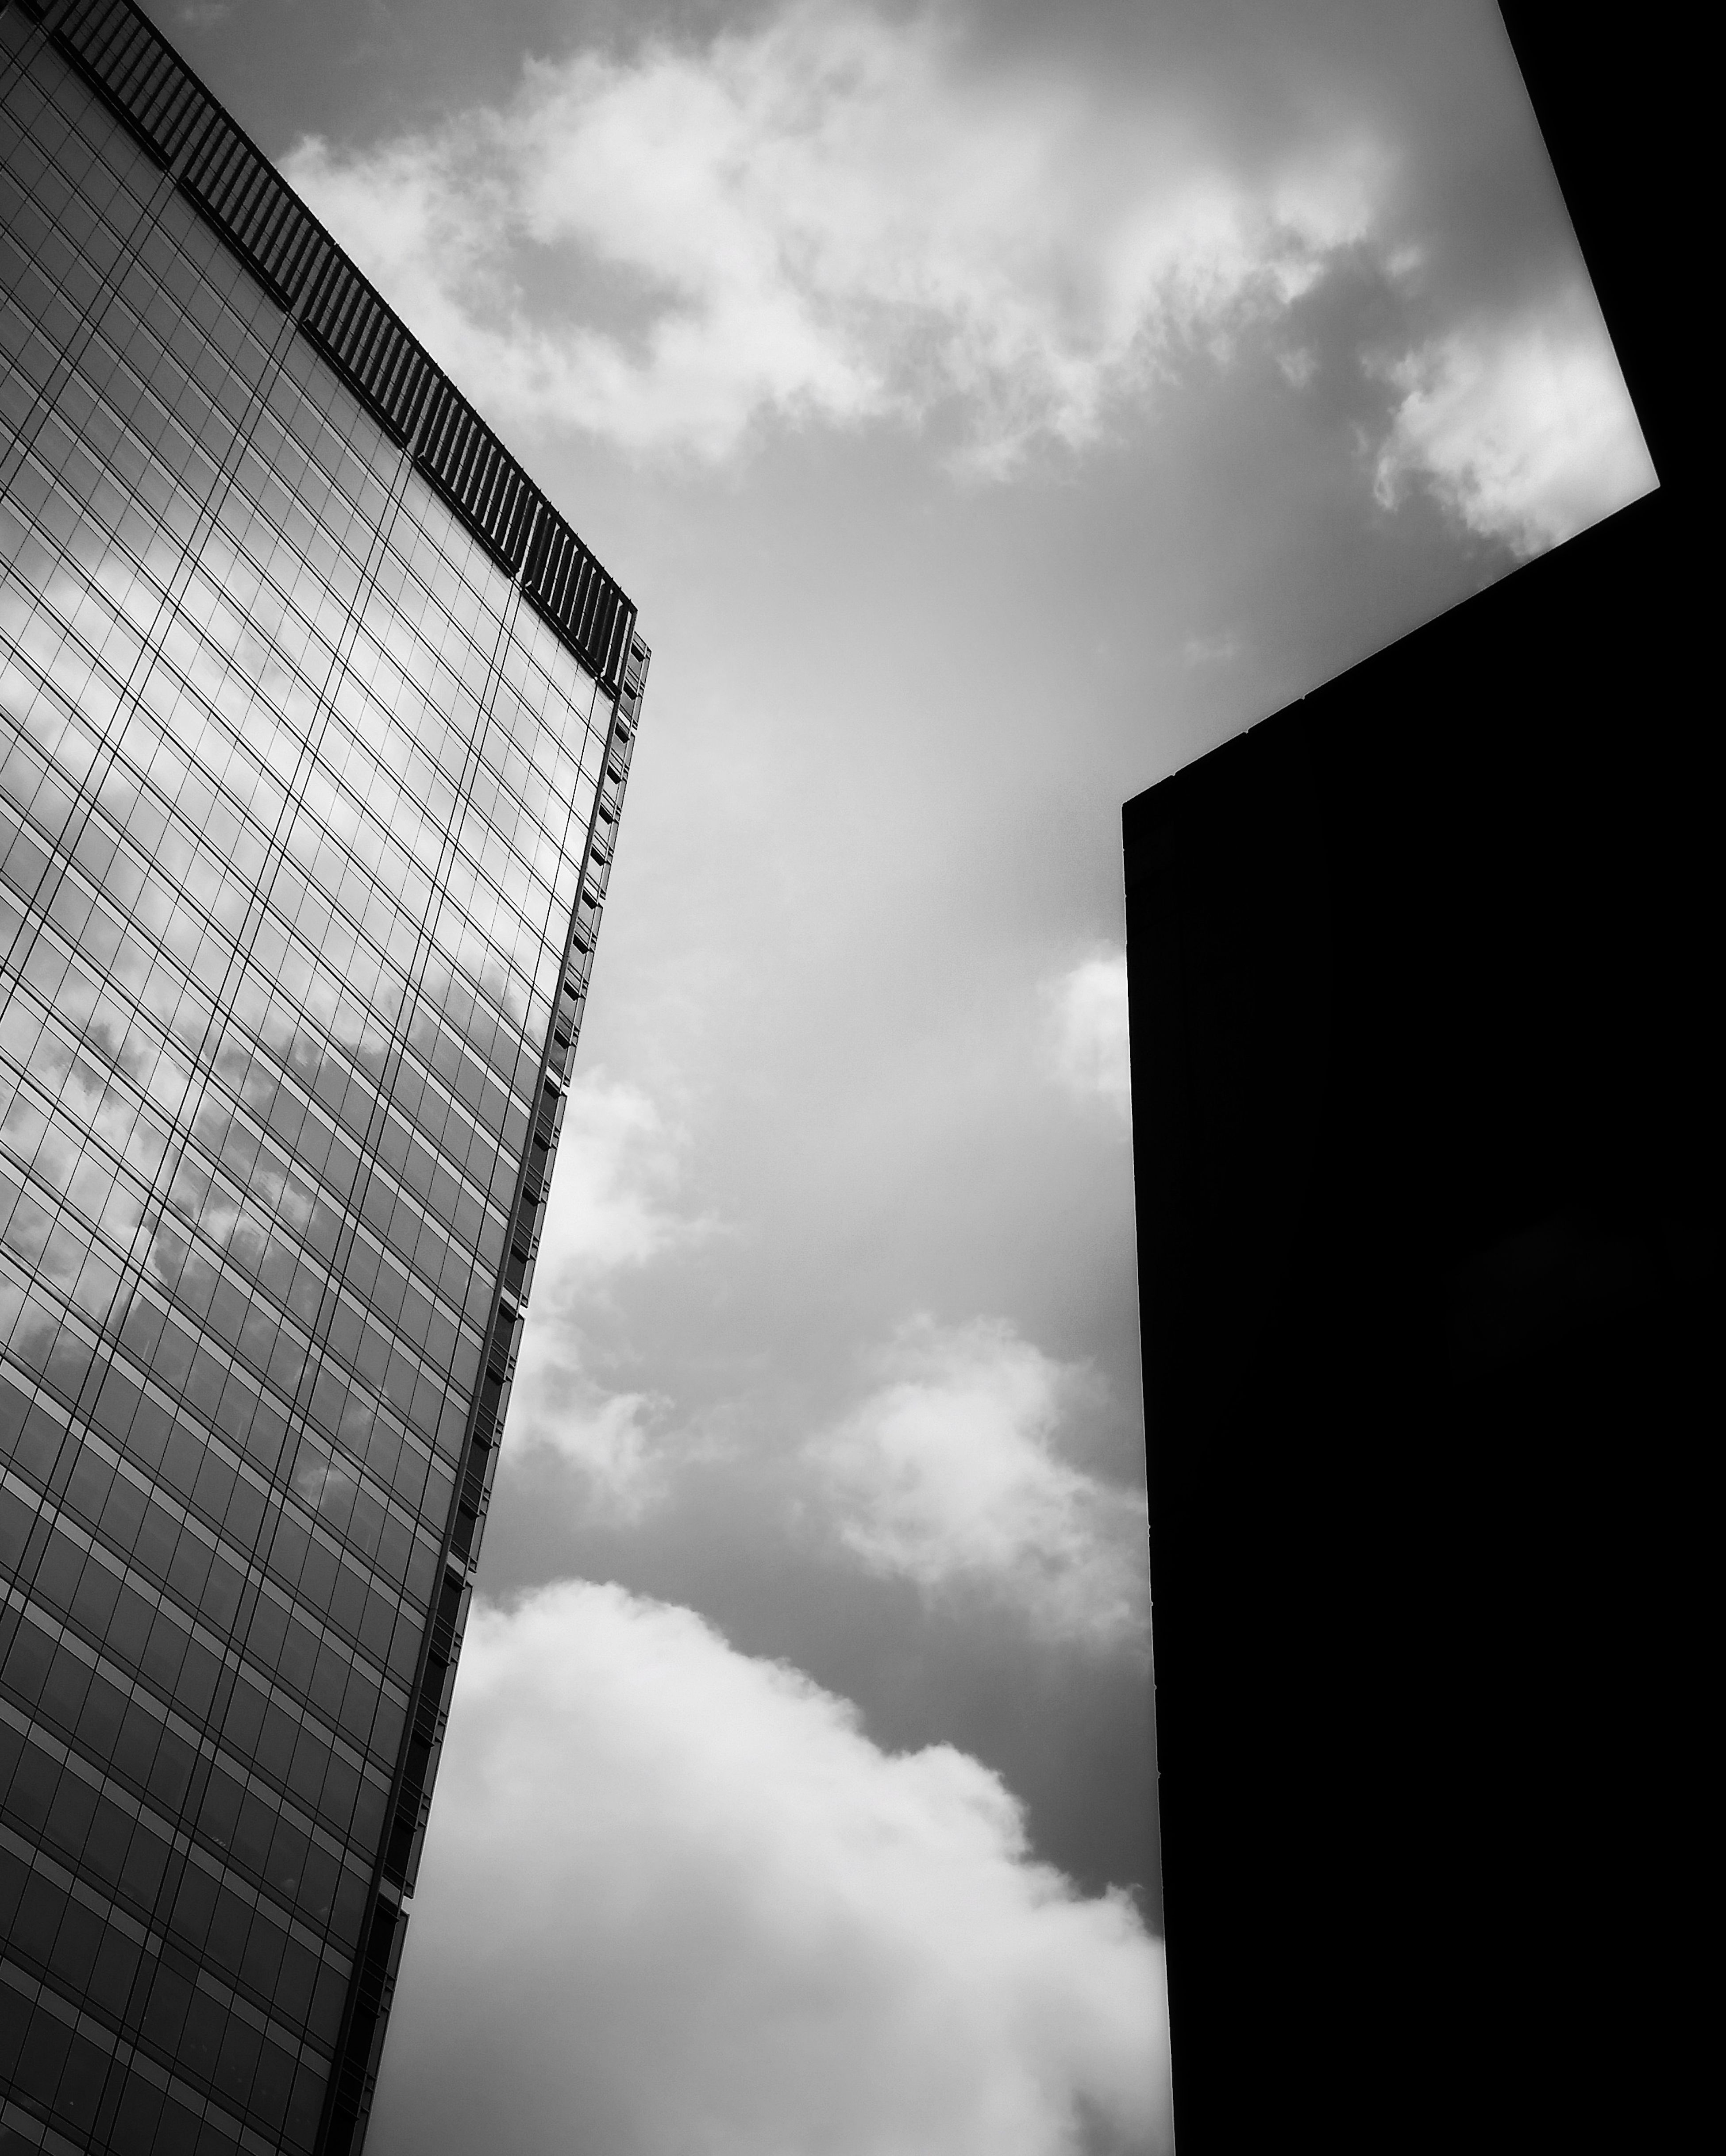 Out of the darkness... Skyscraper Low Angle View Architecture Building Exterior EyeEmbestshots EyeEm Gallery Bnw_friday_challenge Bnw_life Negative Space Bnw_friday_eyeemchallenge Composition Bnw Photography Bnw_collection Bnw_worldwide Monochrome EyeEm Best Shots Rule Of Thirds Lines And Shapes Bnw_society Shadow And Light Architectural Photography Skyporn Architecture Architecture Photography Whitespace